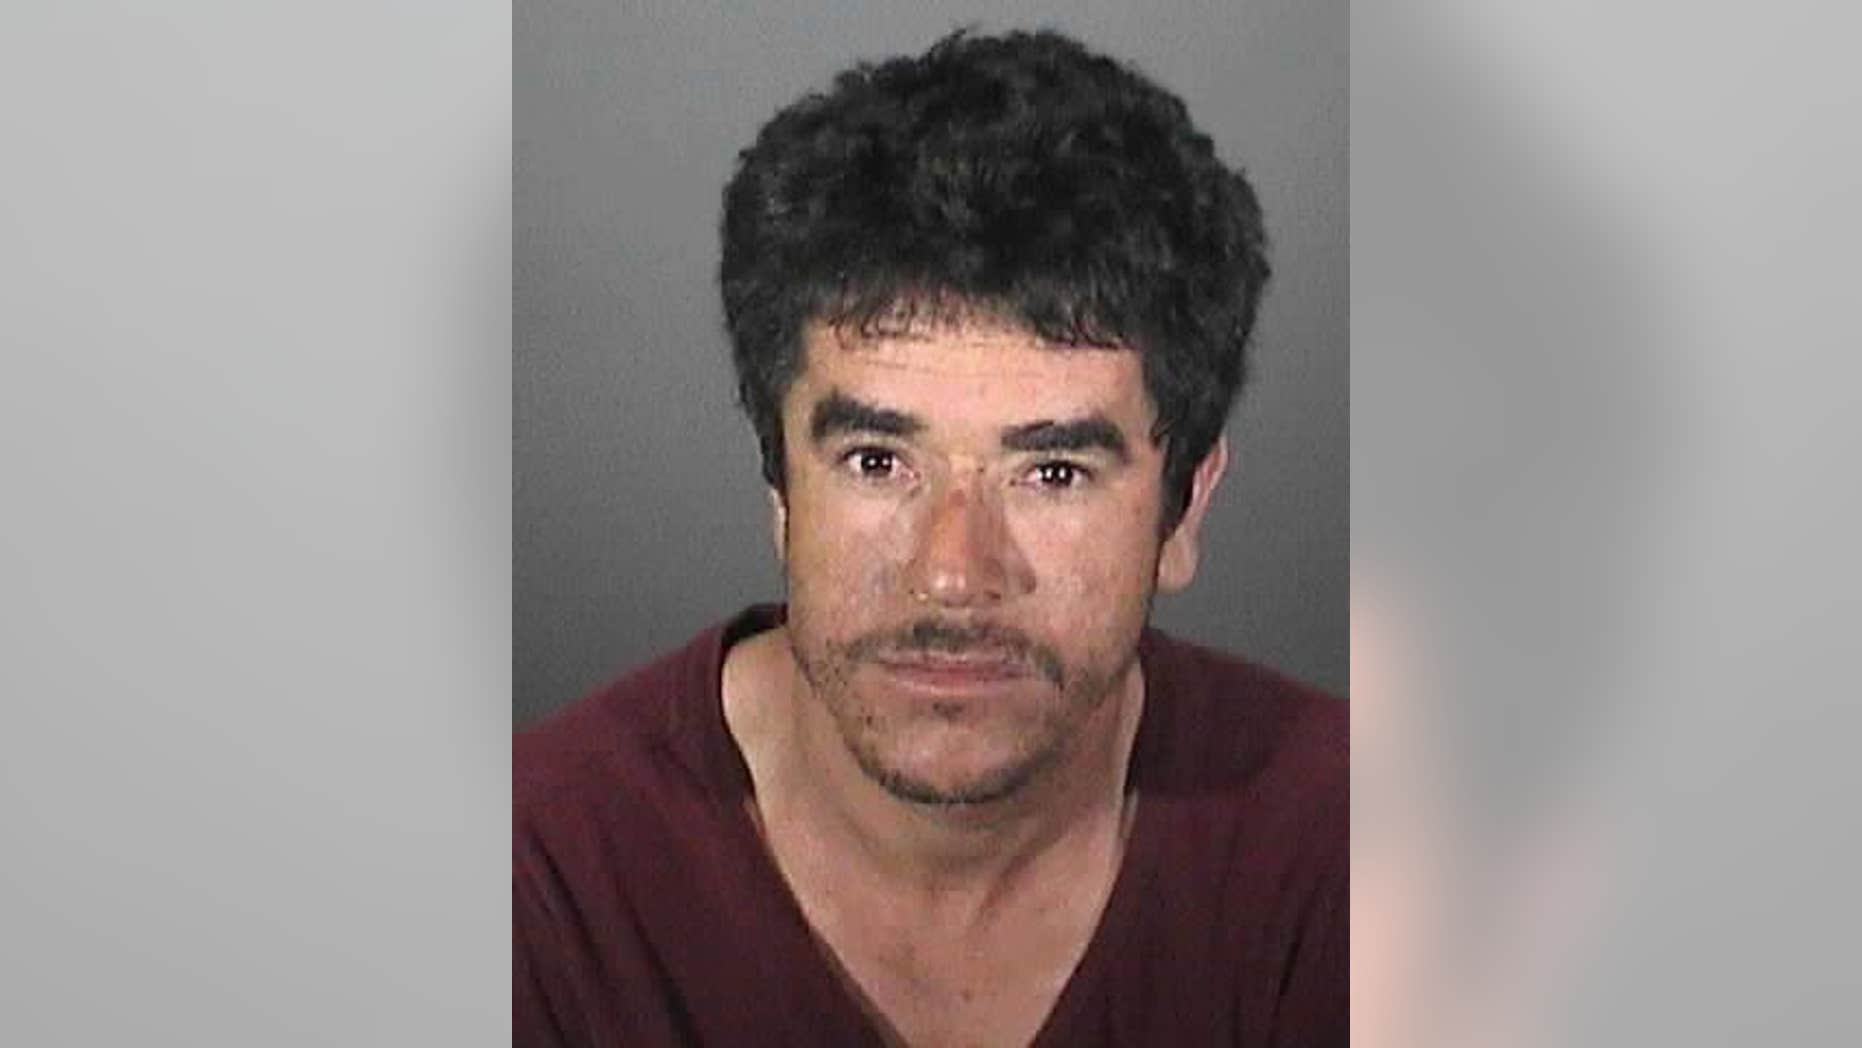 The pursuit for a suspect allegedly connected to a chainsaw attack in California is ongoing following an encounter on Wednesday, police said.